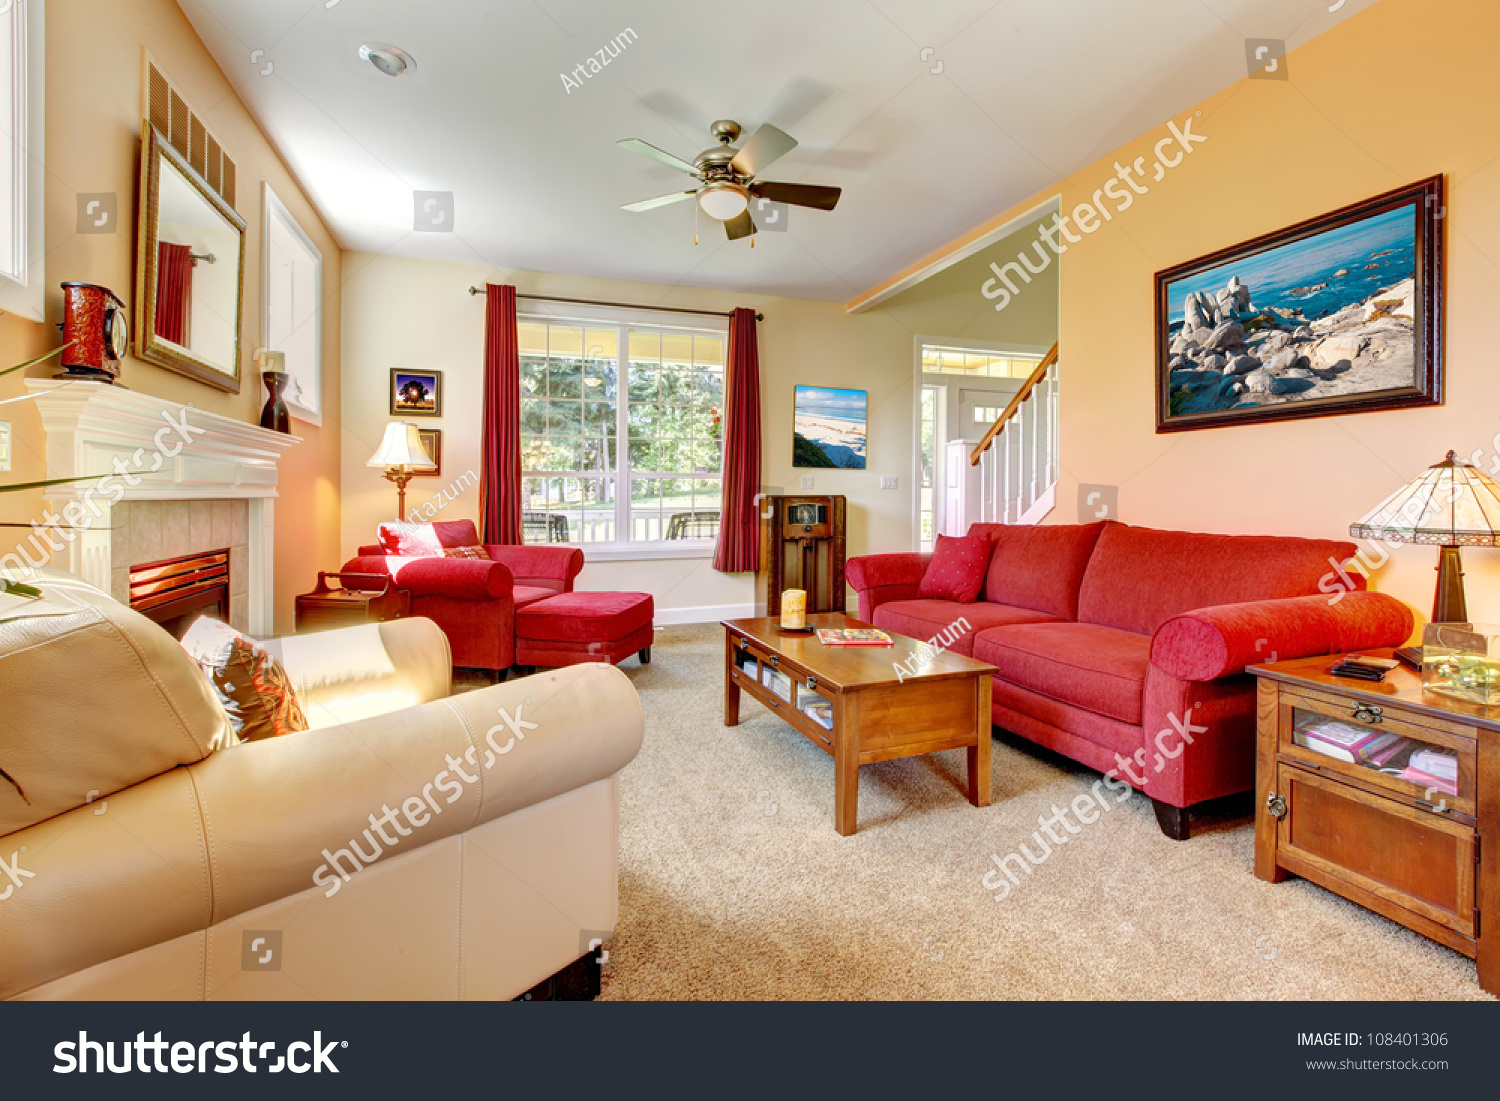 For Red Living Rooms Cozy Classic Peach Red Beautiful Living Stock Photo 108401306